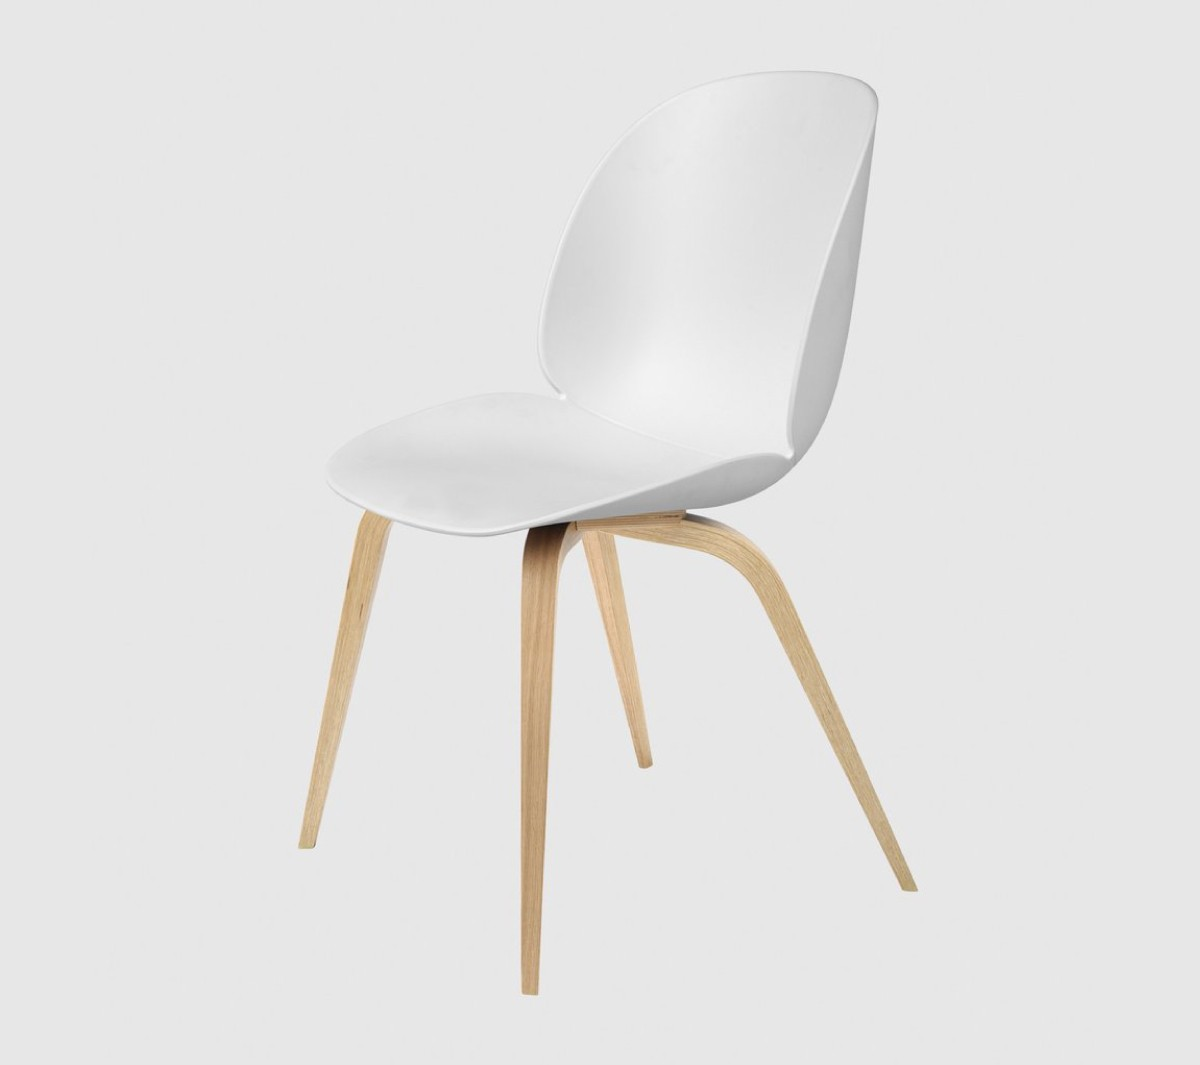 Gubi Sessel Beetle Beetle Chair